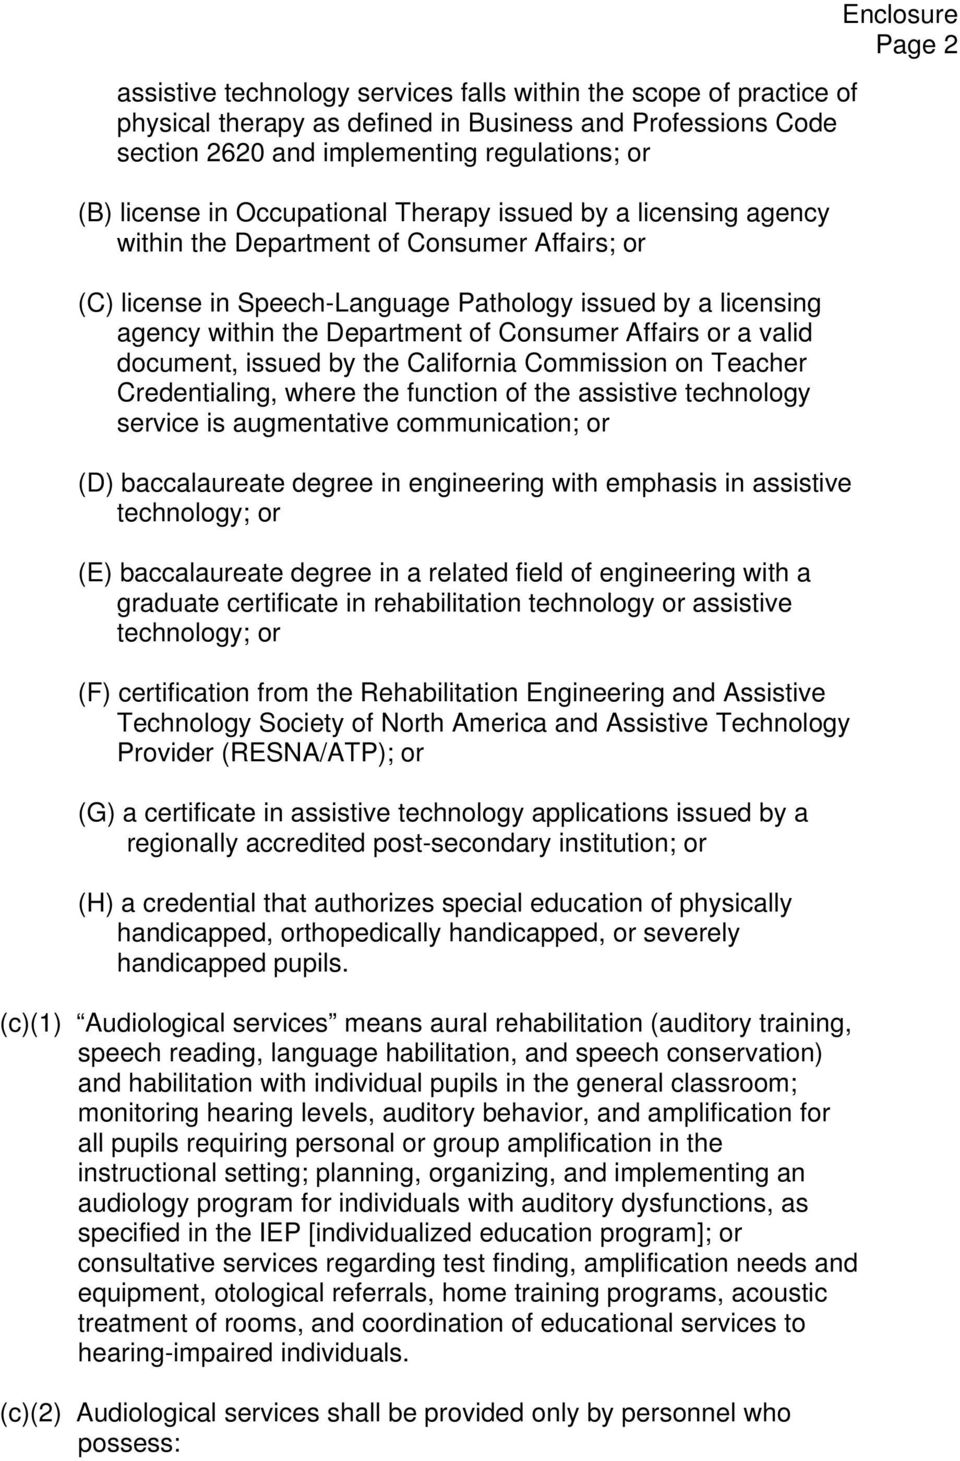 Affairs or a valid document, issued by the California Commission on Teacher Credentialing, where the function of the assistive technology service is augmentative communication; or (D) baccalaureate